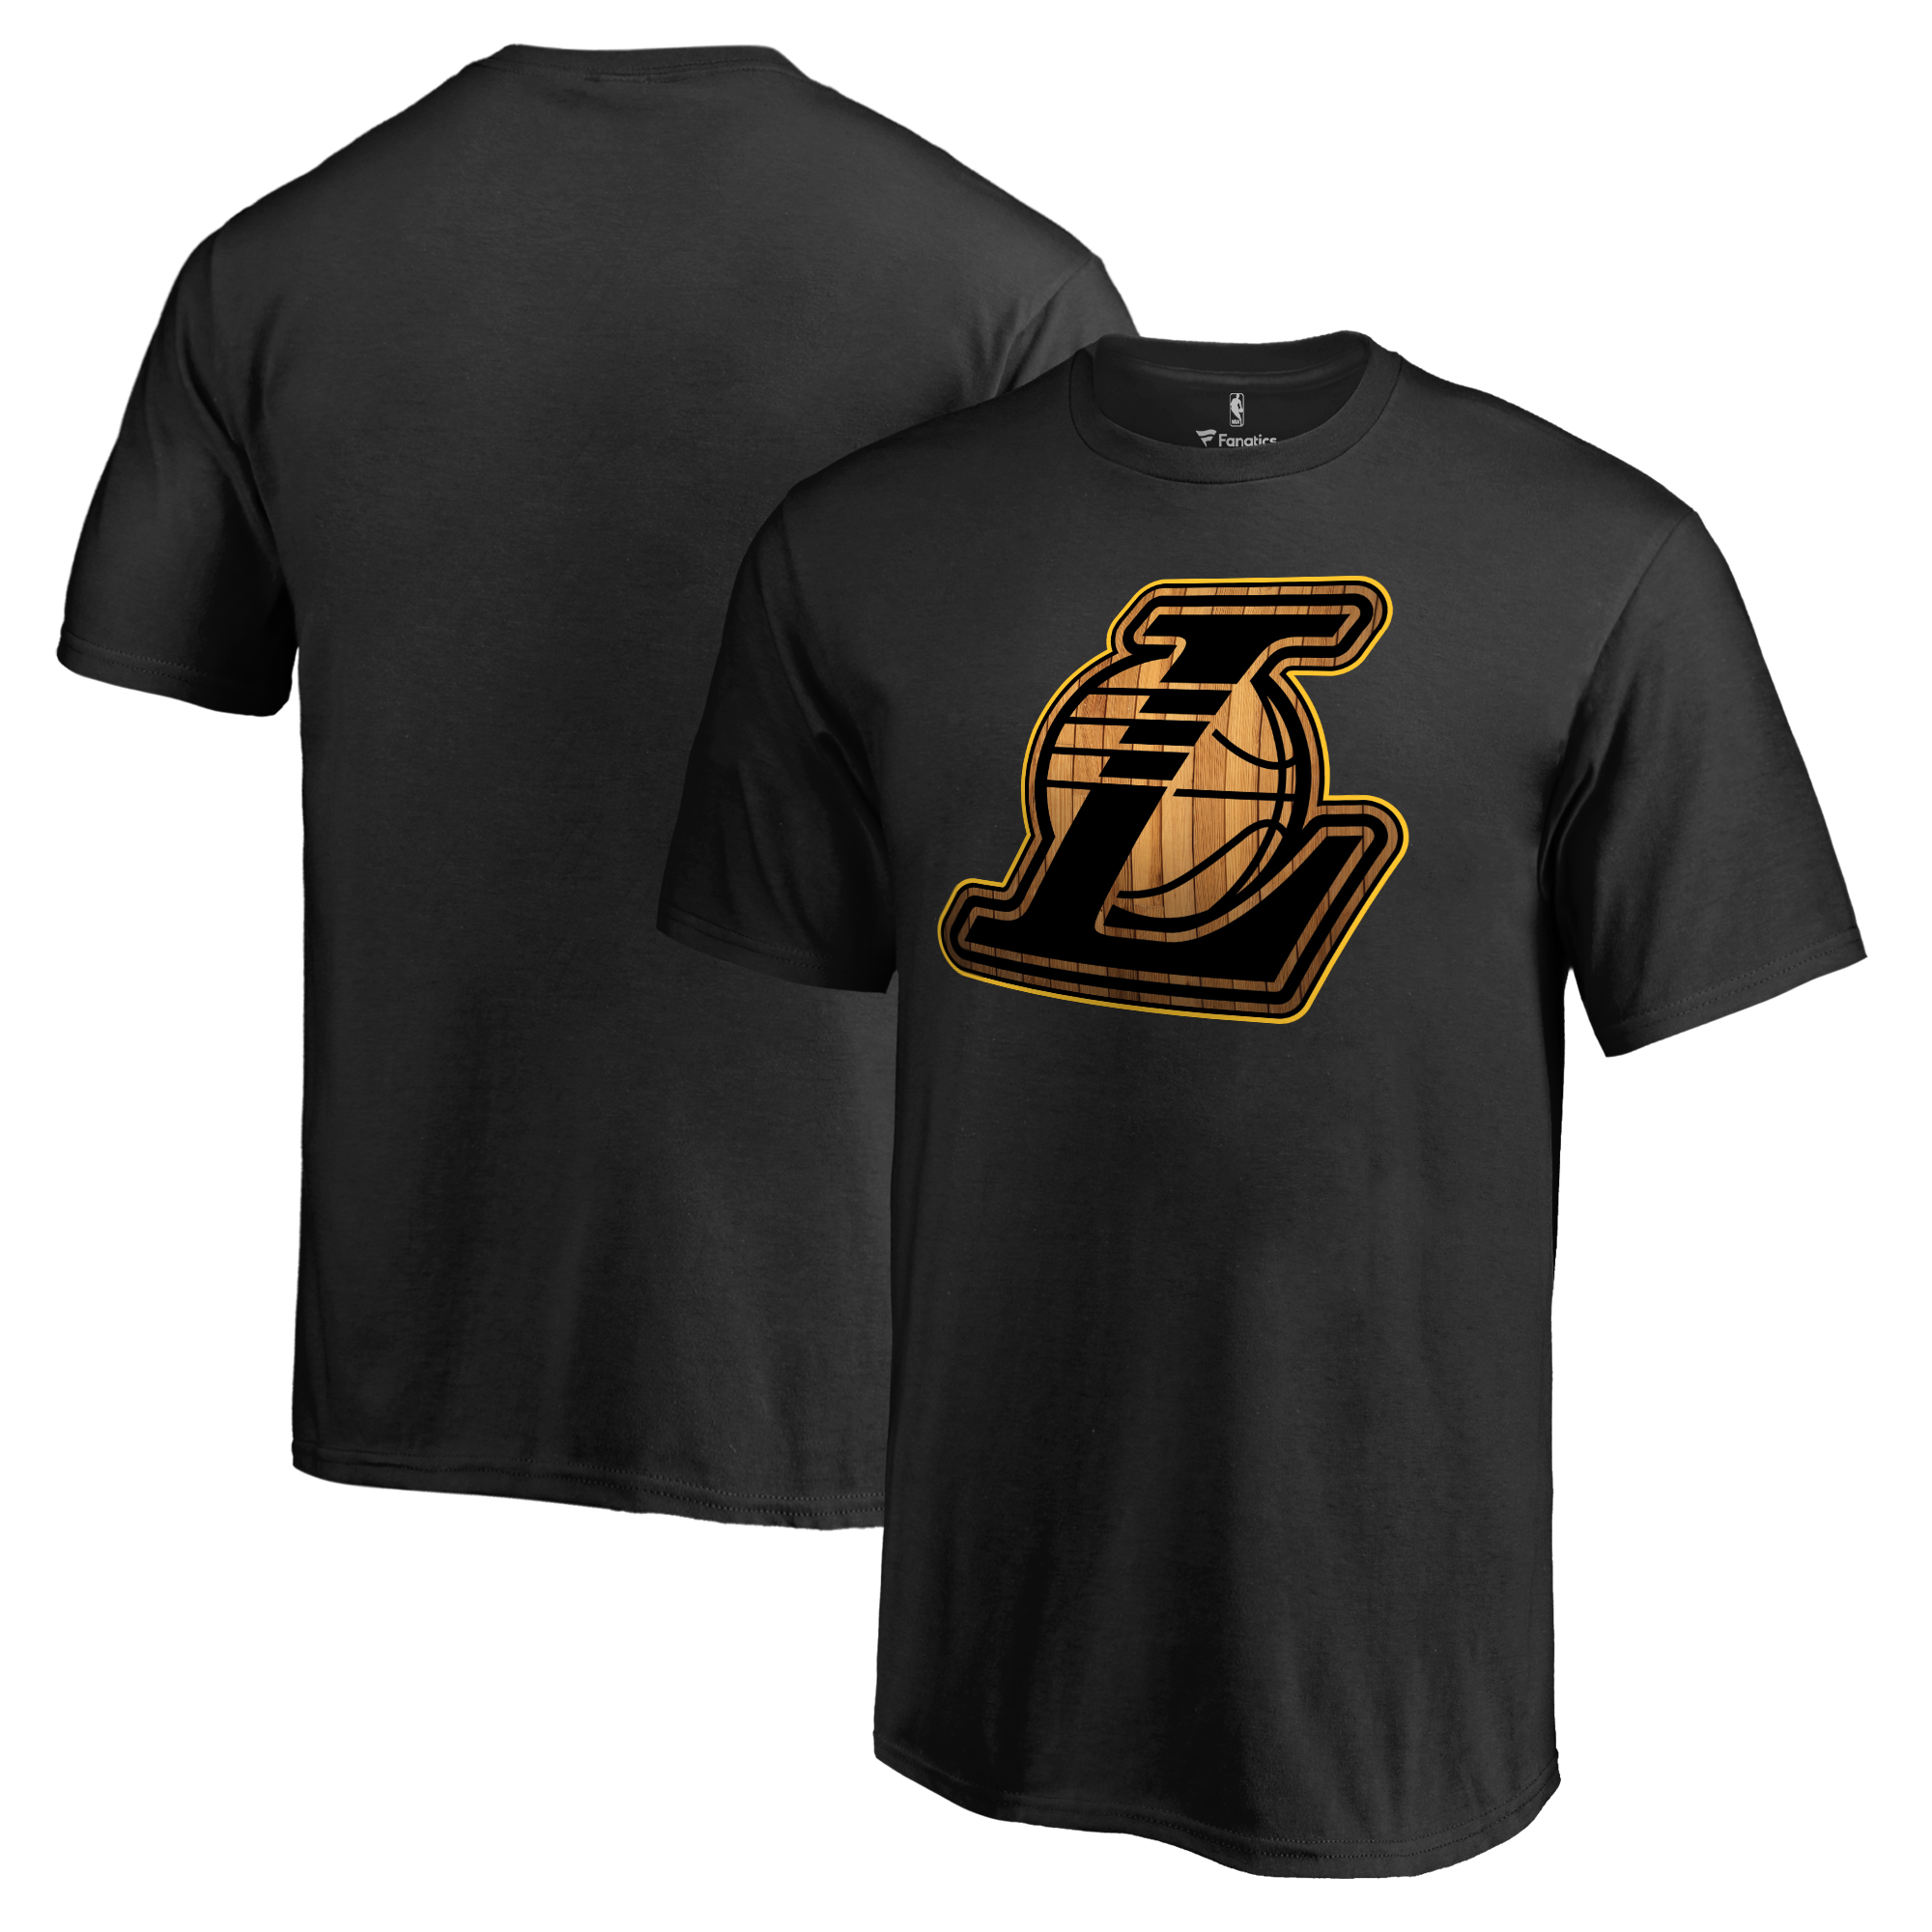 Los Angeles Lakers Youth Hardwood T-Shirt - Black